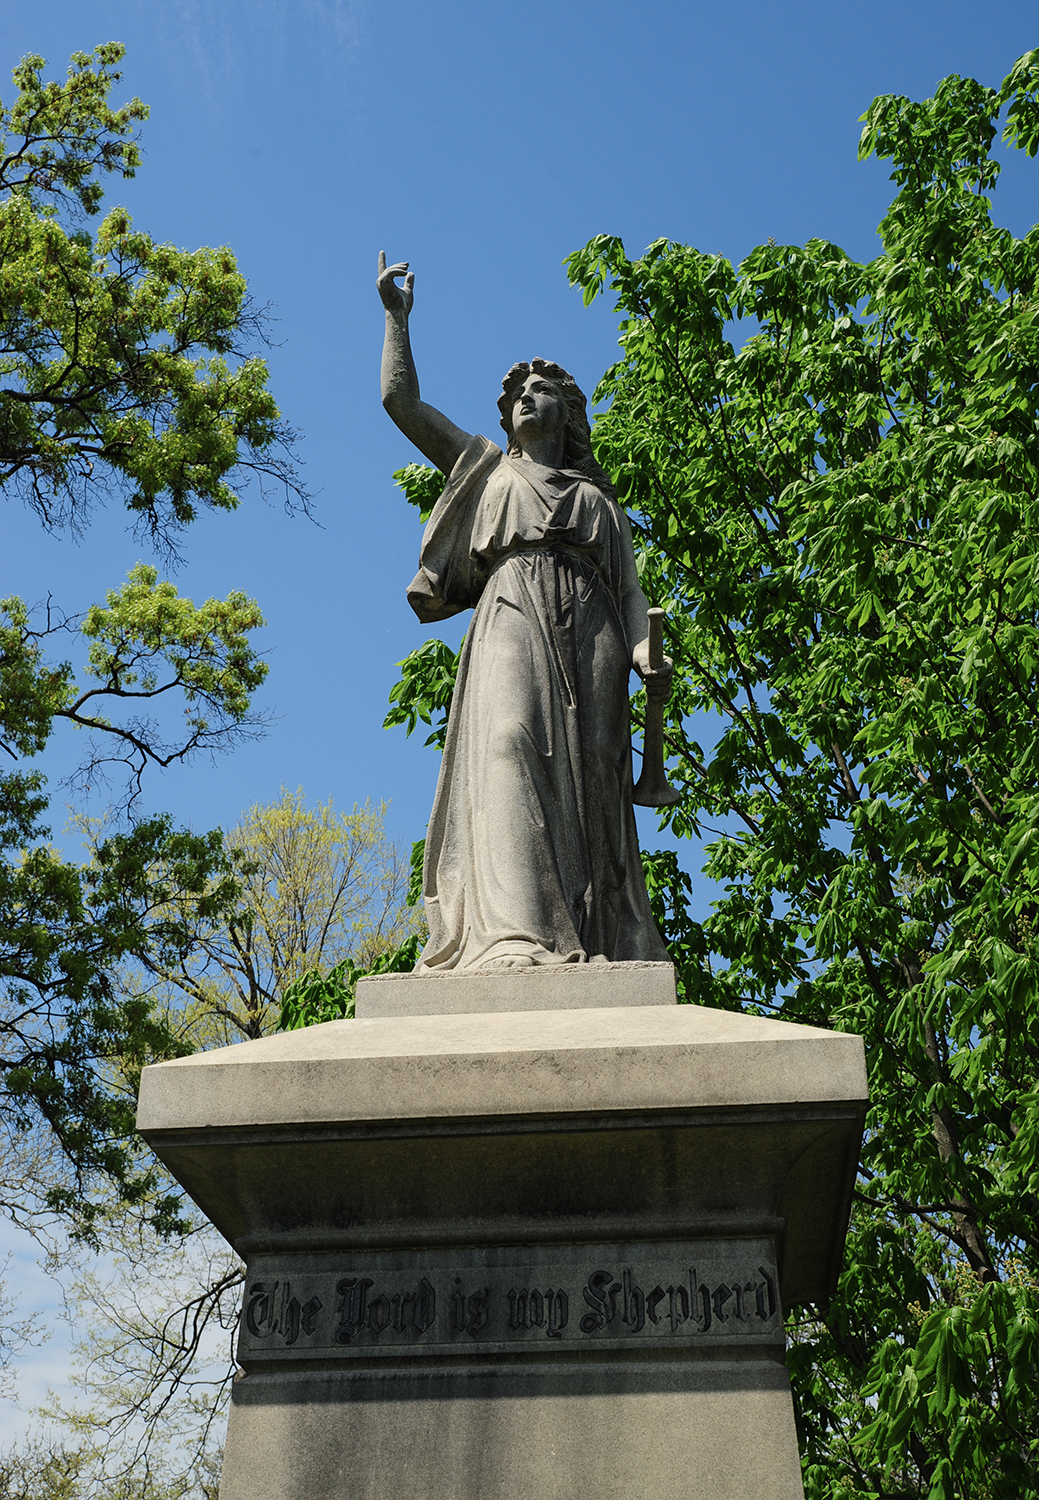 Spring Grove Cemetery & Arboretum is located at 4521 Spring Grove Avenue, Cincinnati OH 45232. / Image: Melissa Doss Sliney